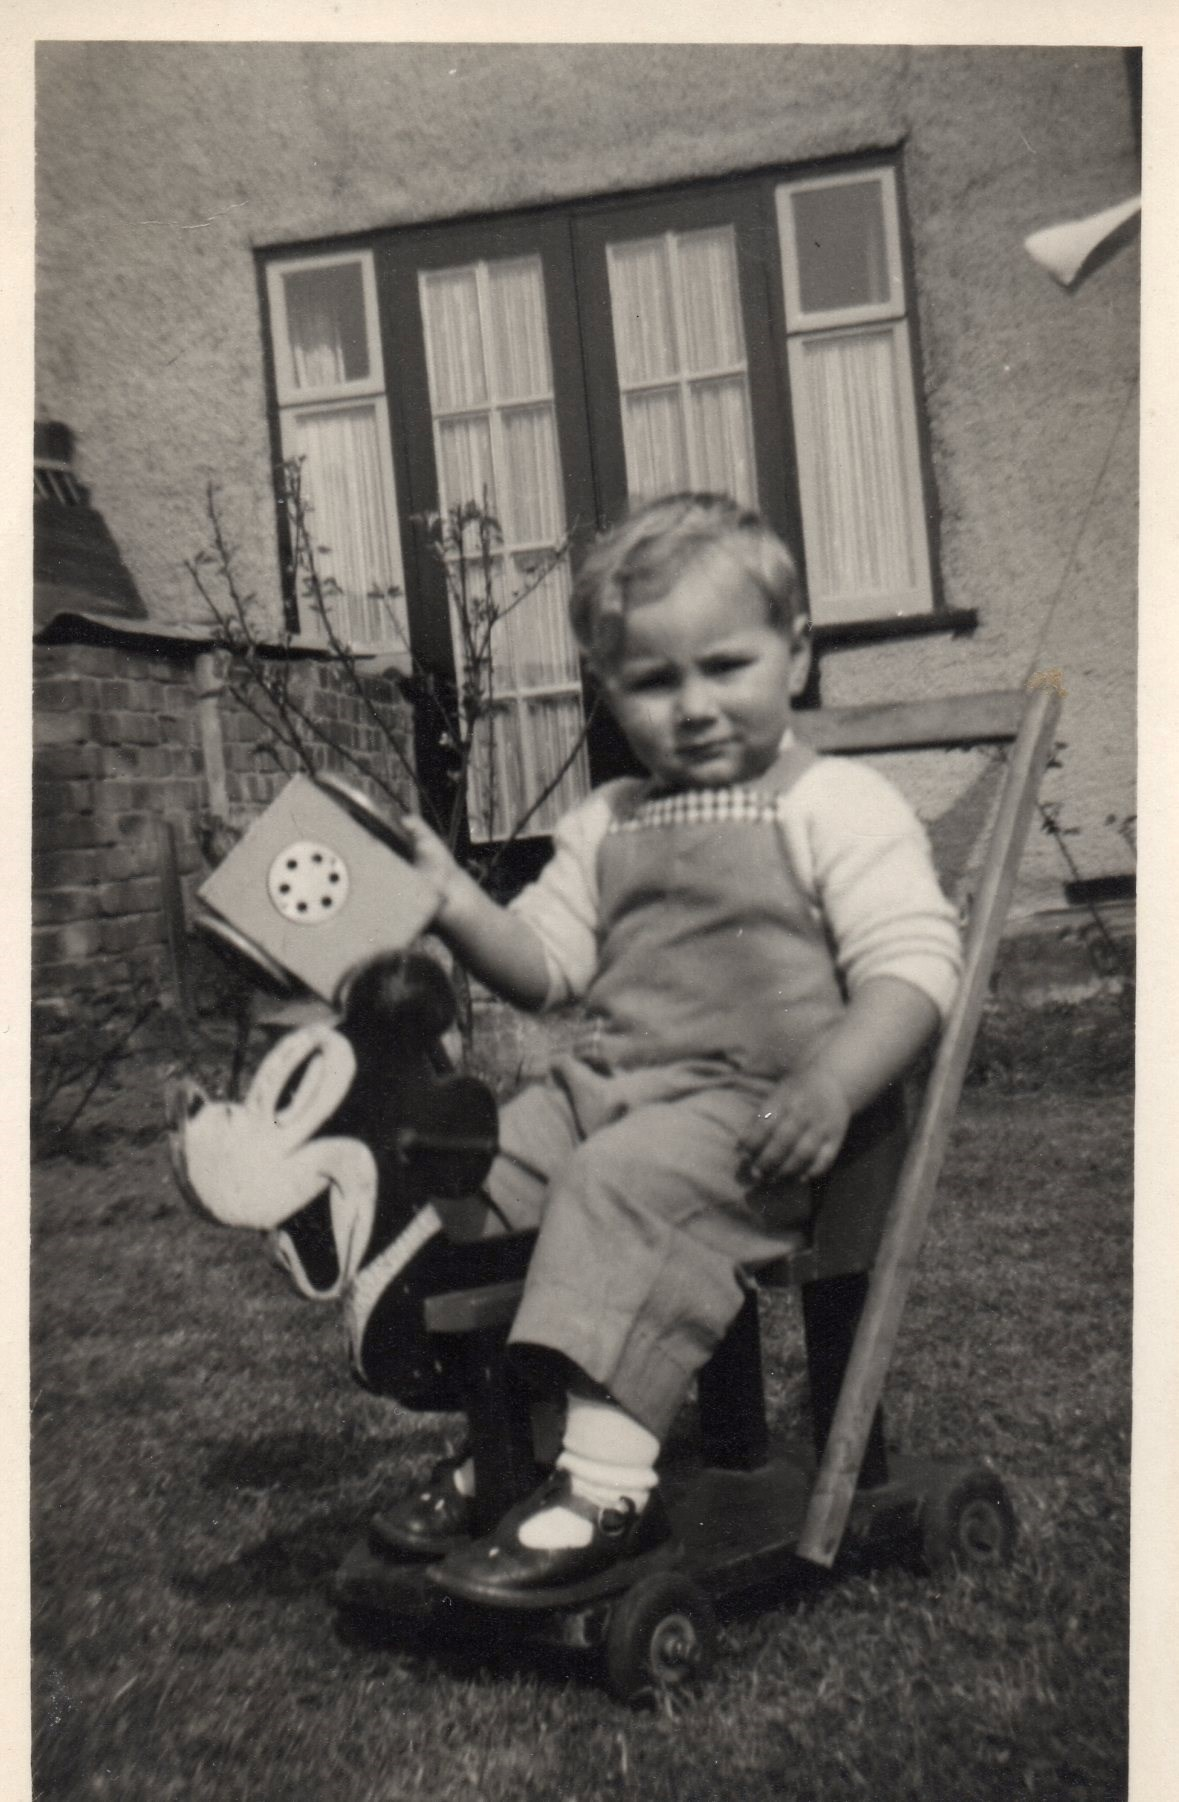 Stanley at 2 years old